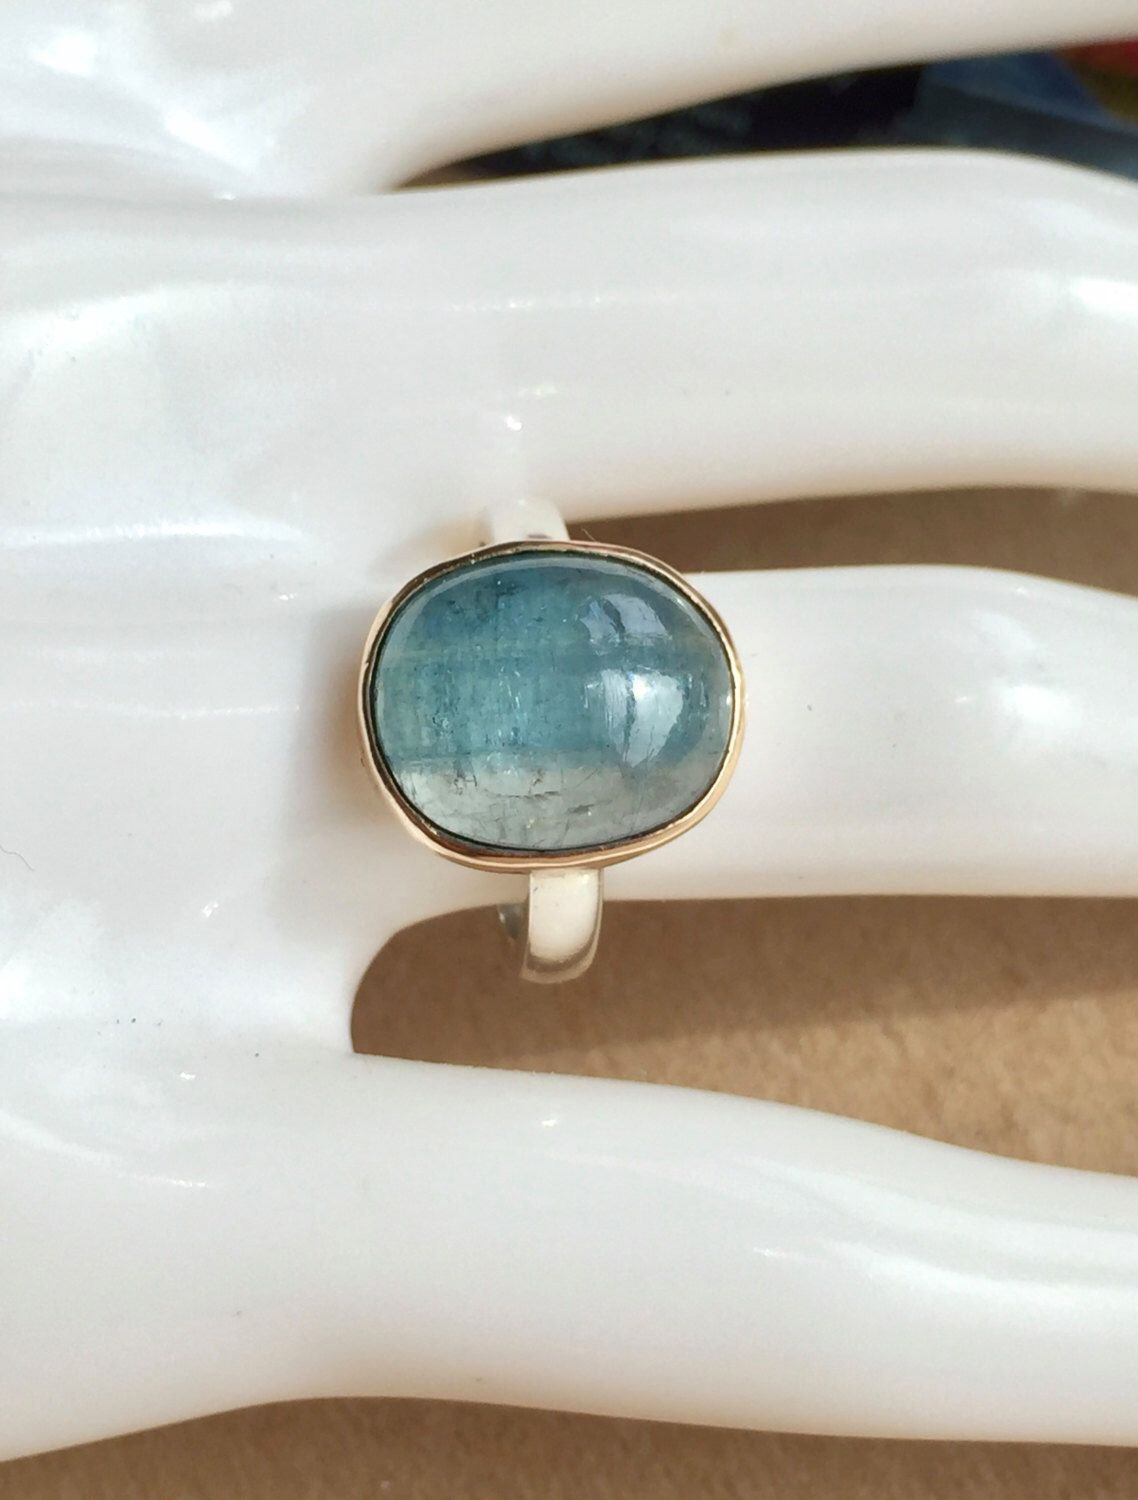 Bi Colour Aquamarine 14K Gold Setting, Sterling Silver Ladies Ring. Size US-6, UK-L 1/2. by MenschJewellery on Etsy https://www.etsy.com/listing/481459977/bi-colour-aquamarine-14k-gold-setting